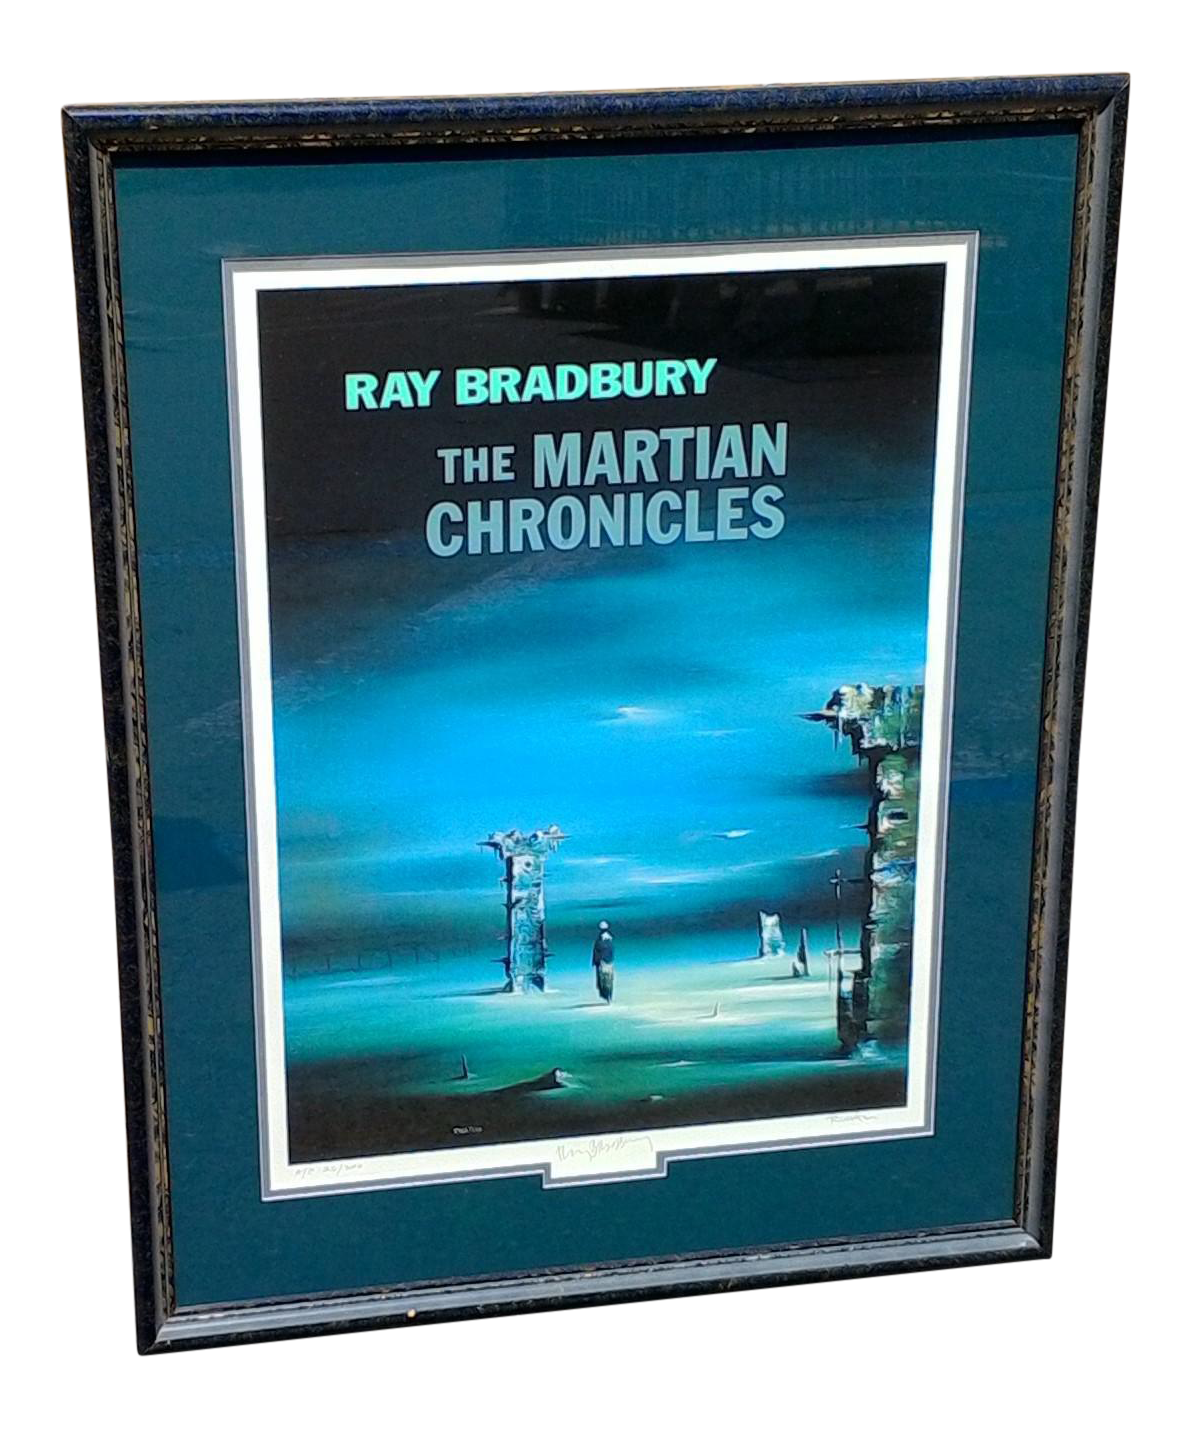 the martian chronicles isolat essay The book of bradbury's creation that i read was the martian chronicles initially, i was intrigued by ray bradbury's implementation of elaborately descriptive settings each chronicle takes place during a different month and year, arranged in chronological order, from january 1999 to october 2026.